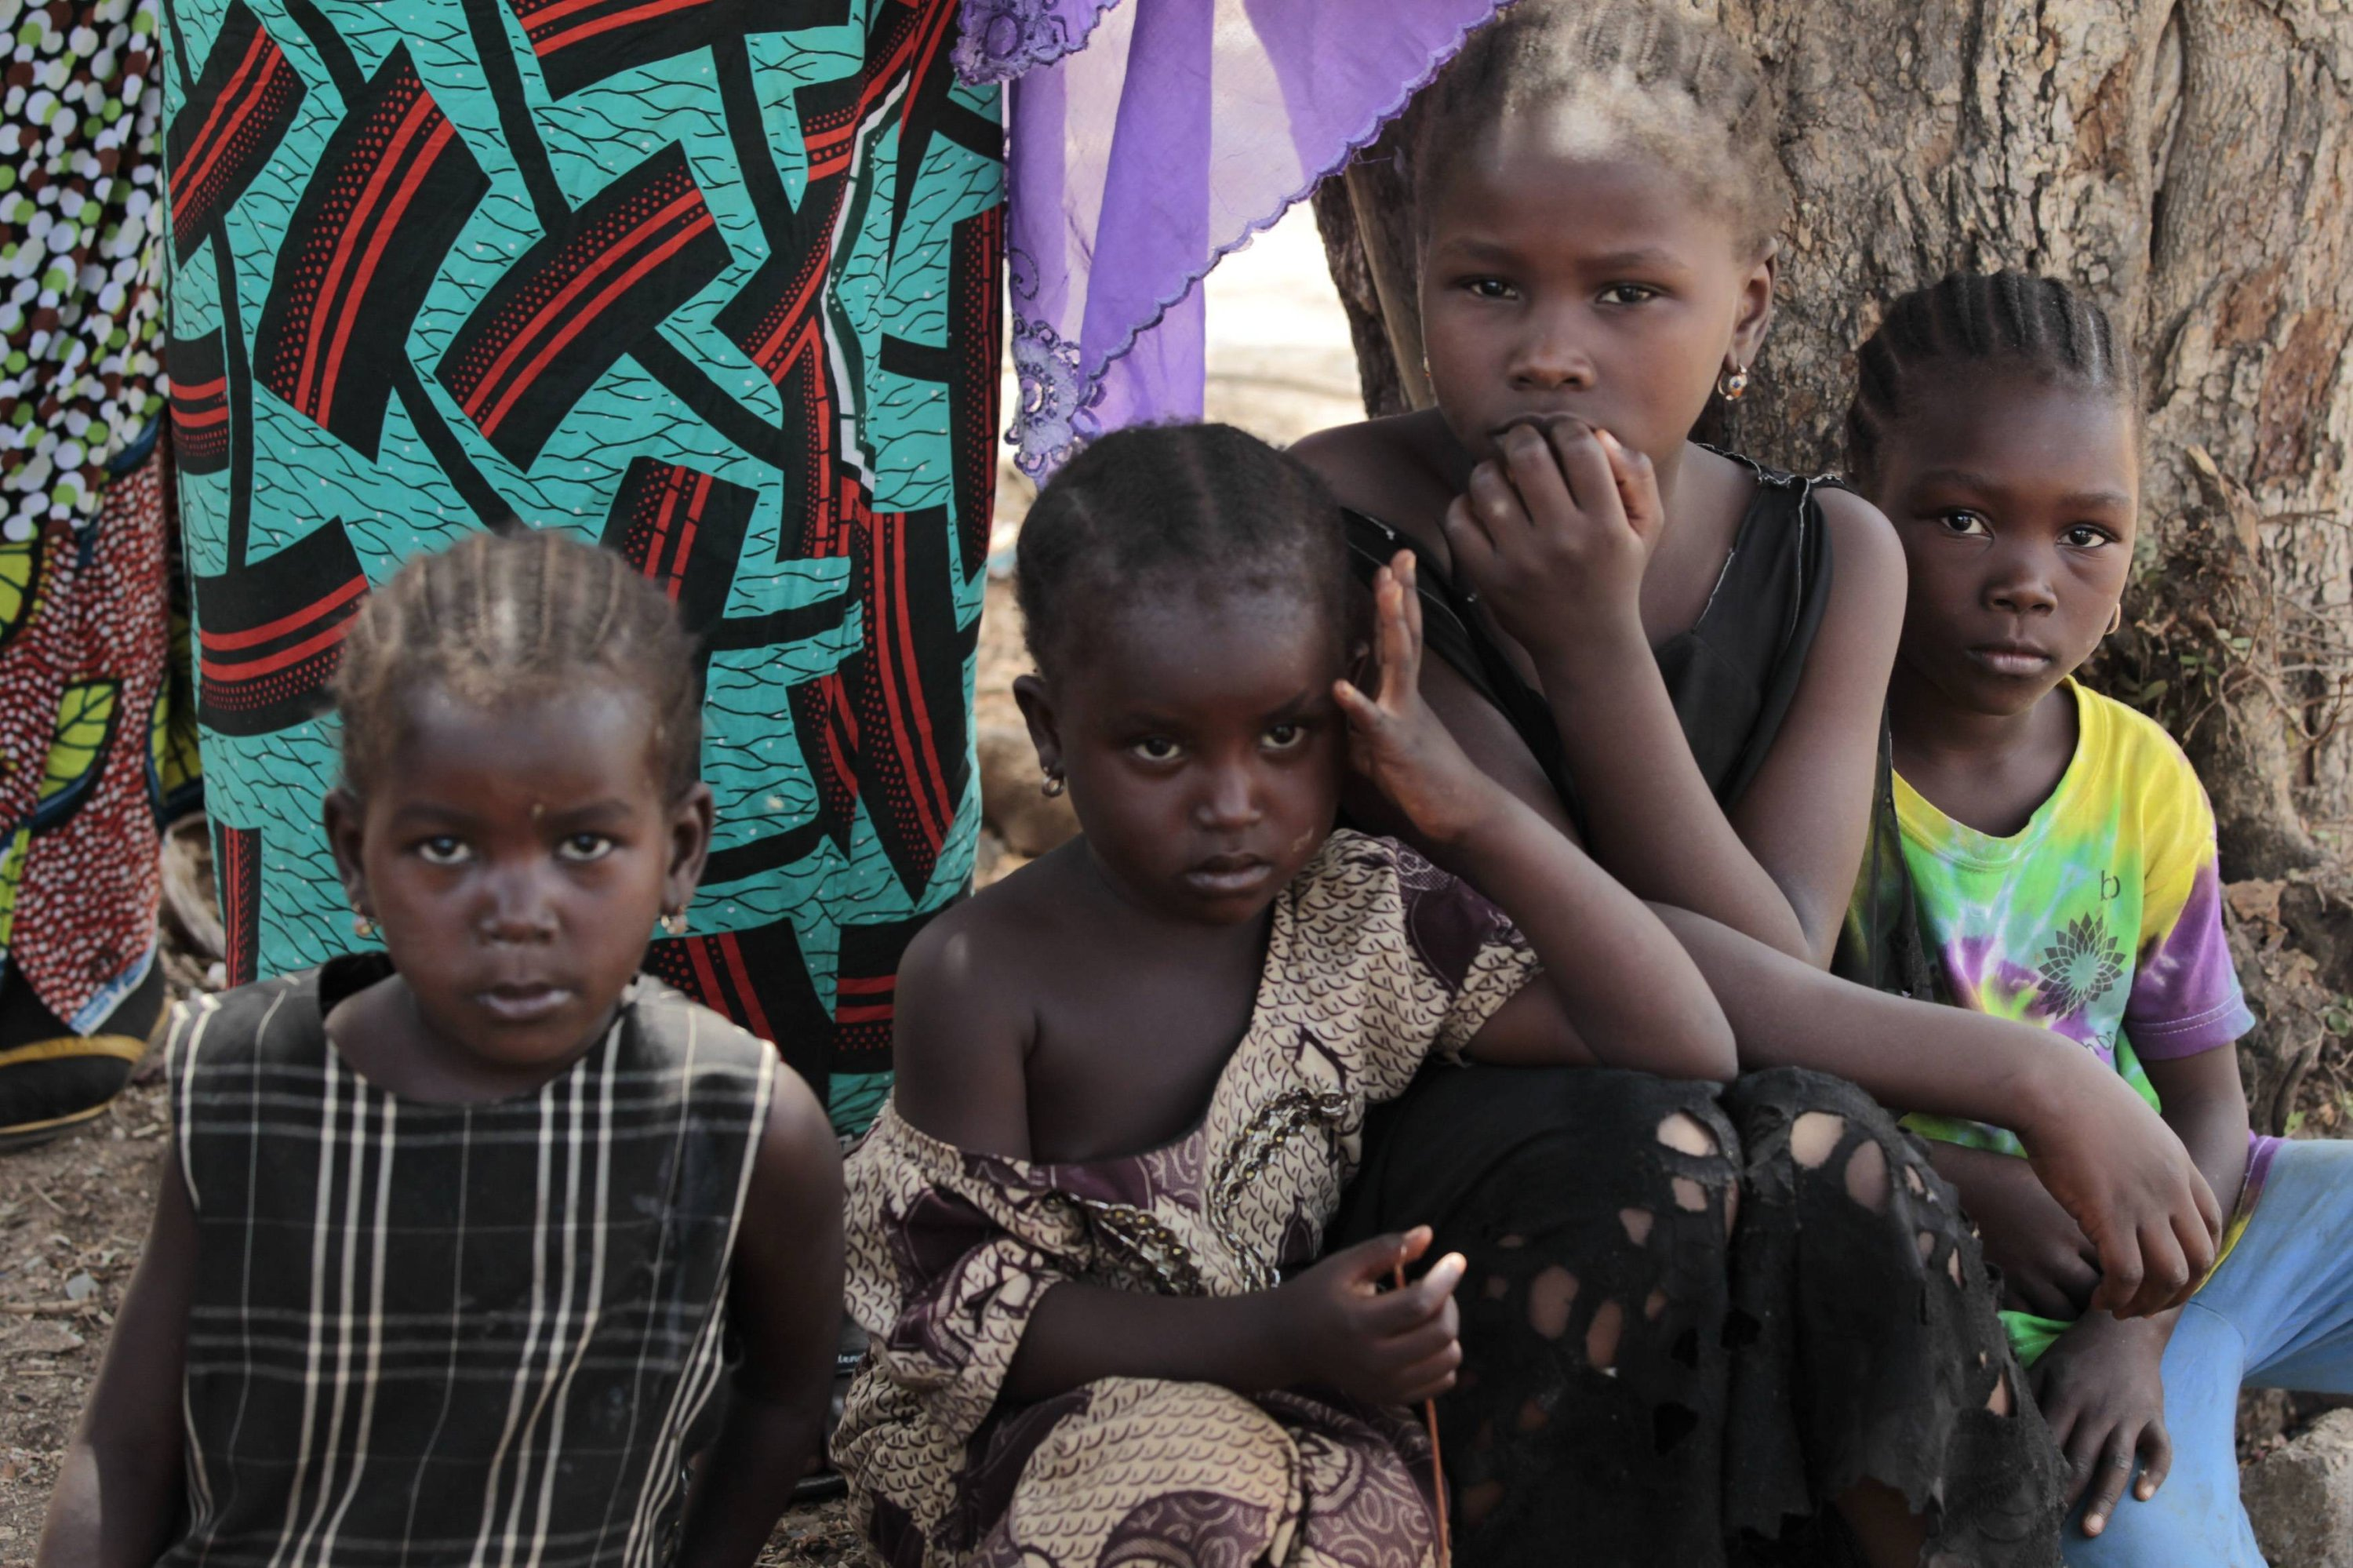 Children gather at a camp for displaced people fleeing violence from Gulak, a border town that was attacked by Boko Haram militants in September 2014, northern Adamawa state, Nigeria, Jan. 31, 2015. (Reuters File Photo)